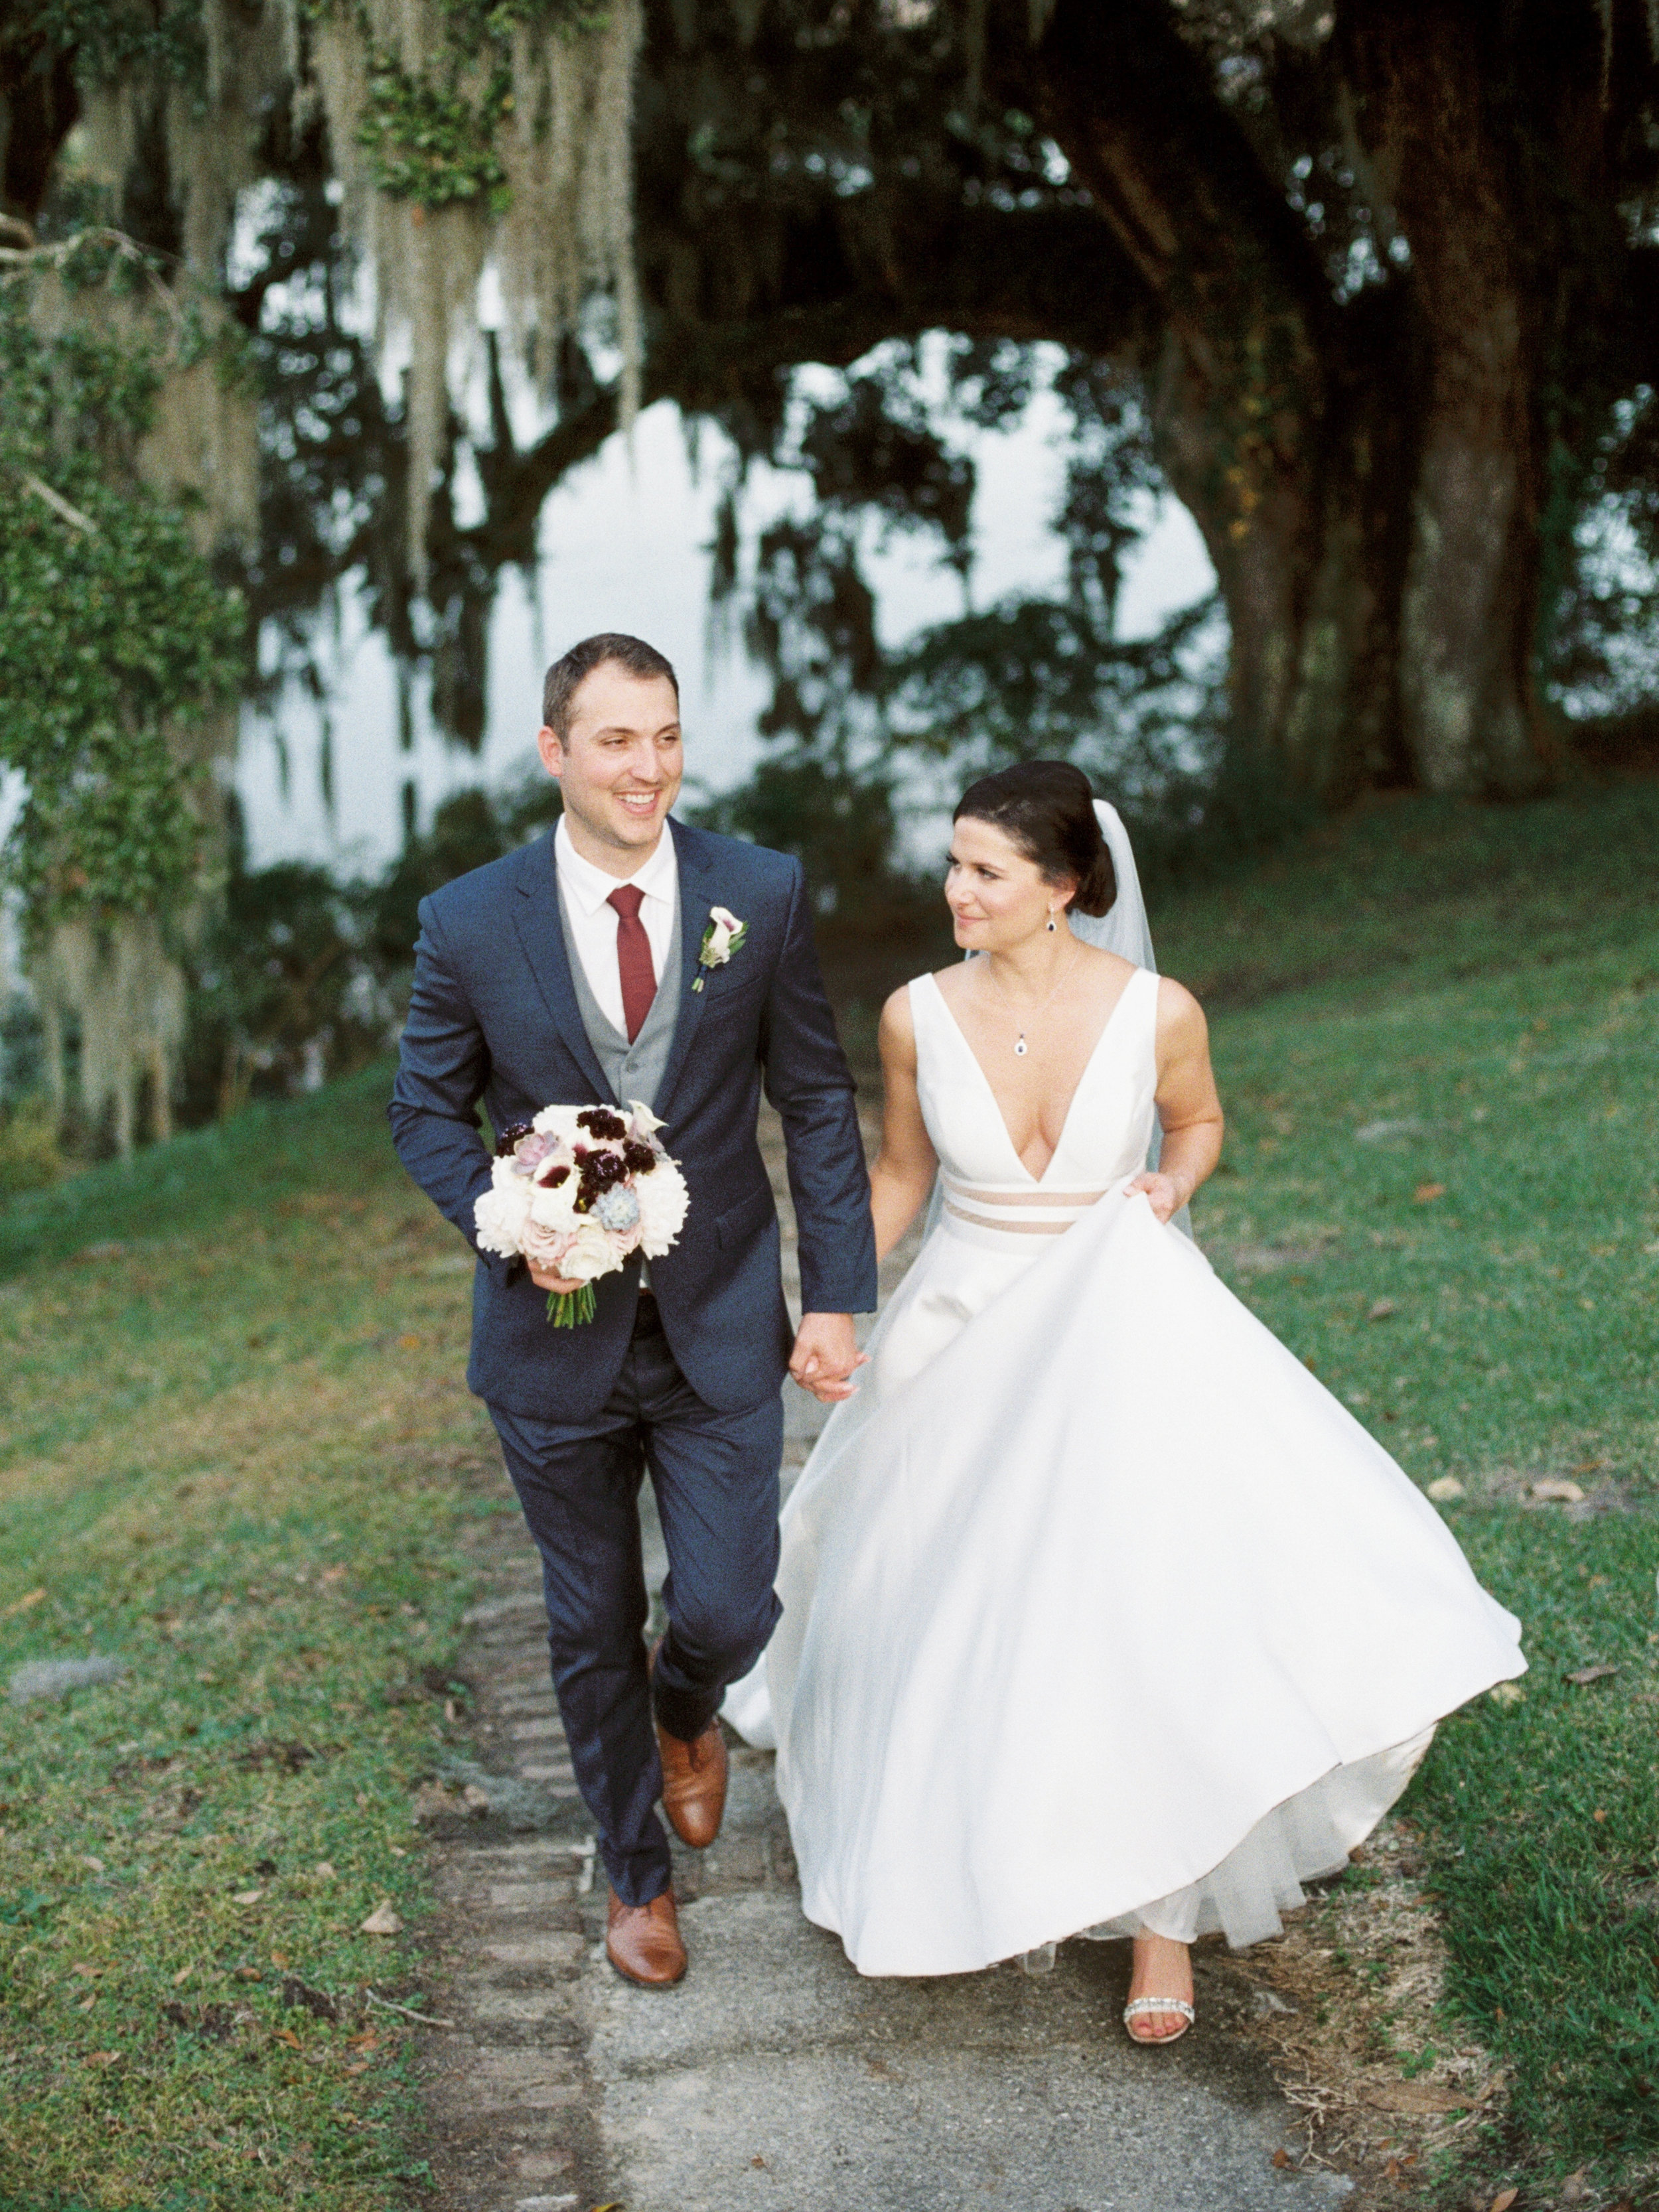 middleton-wedding-charleston-plantation